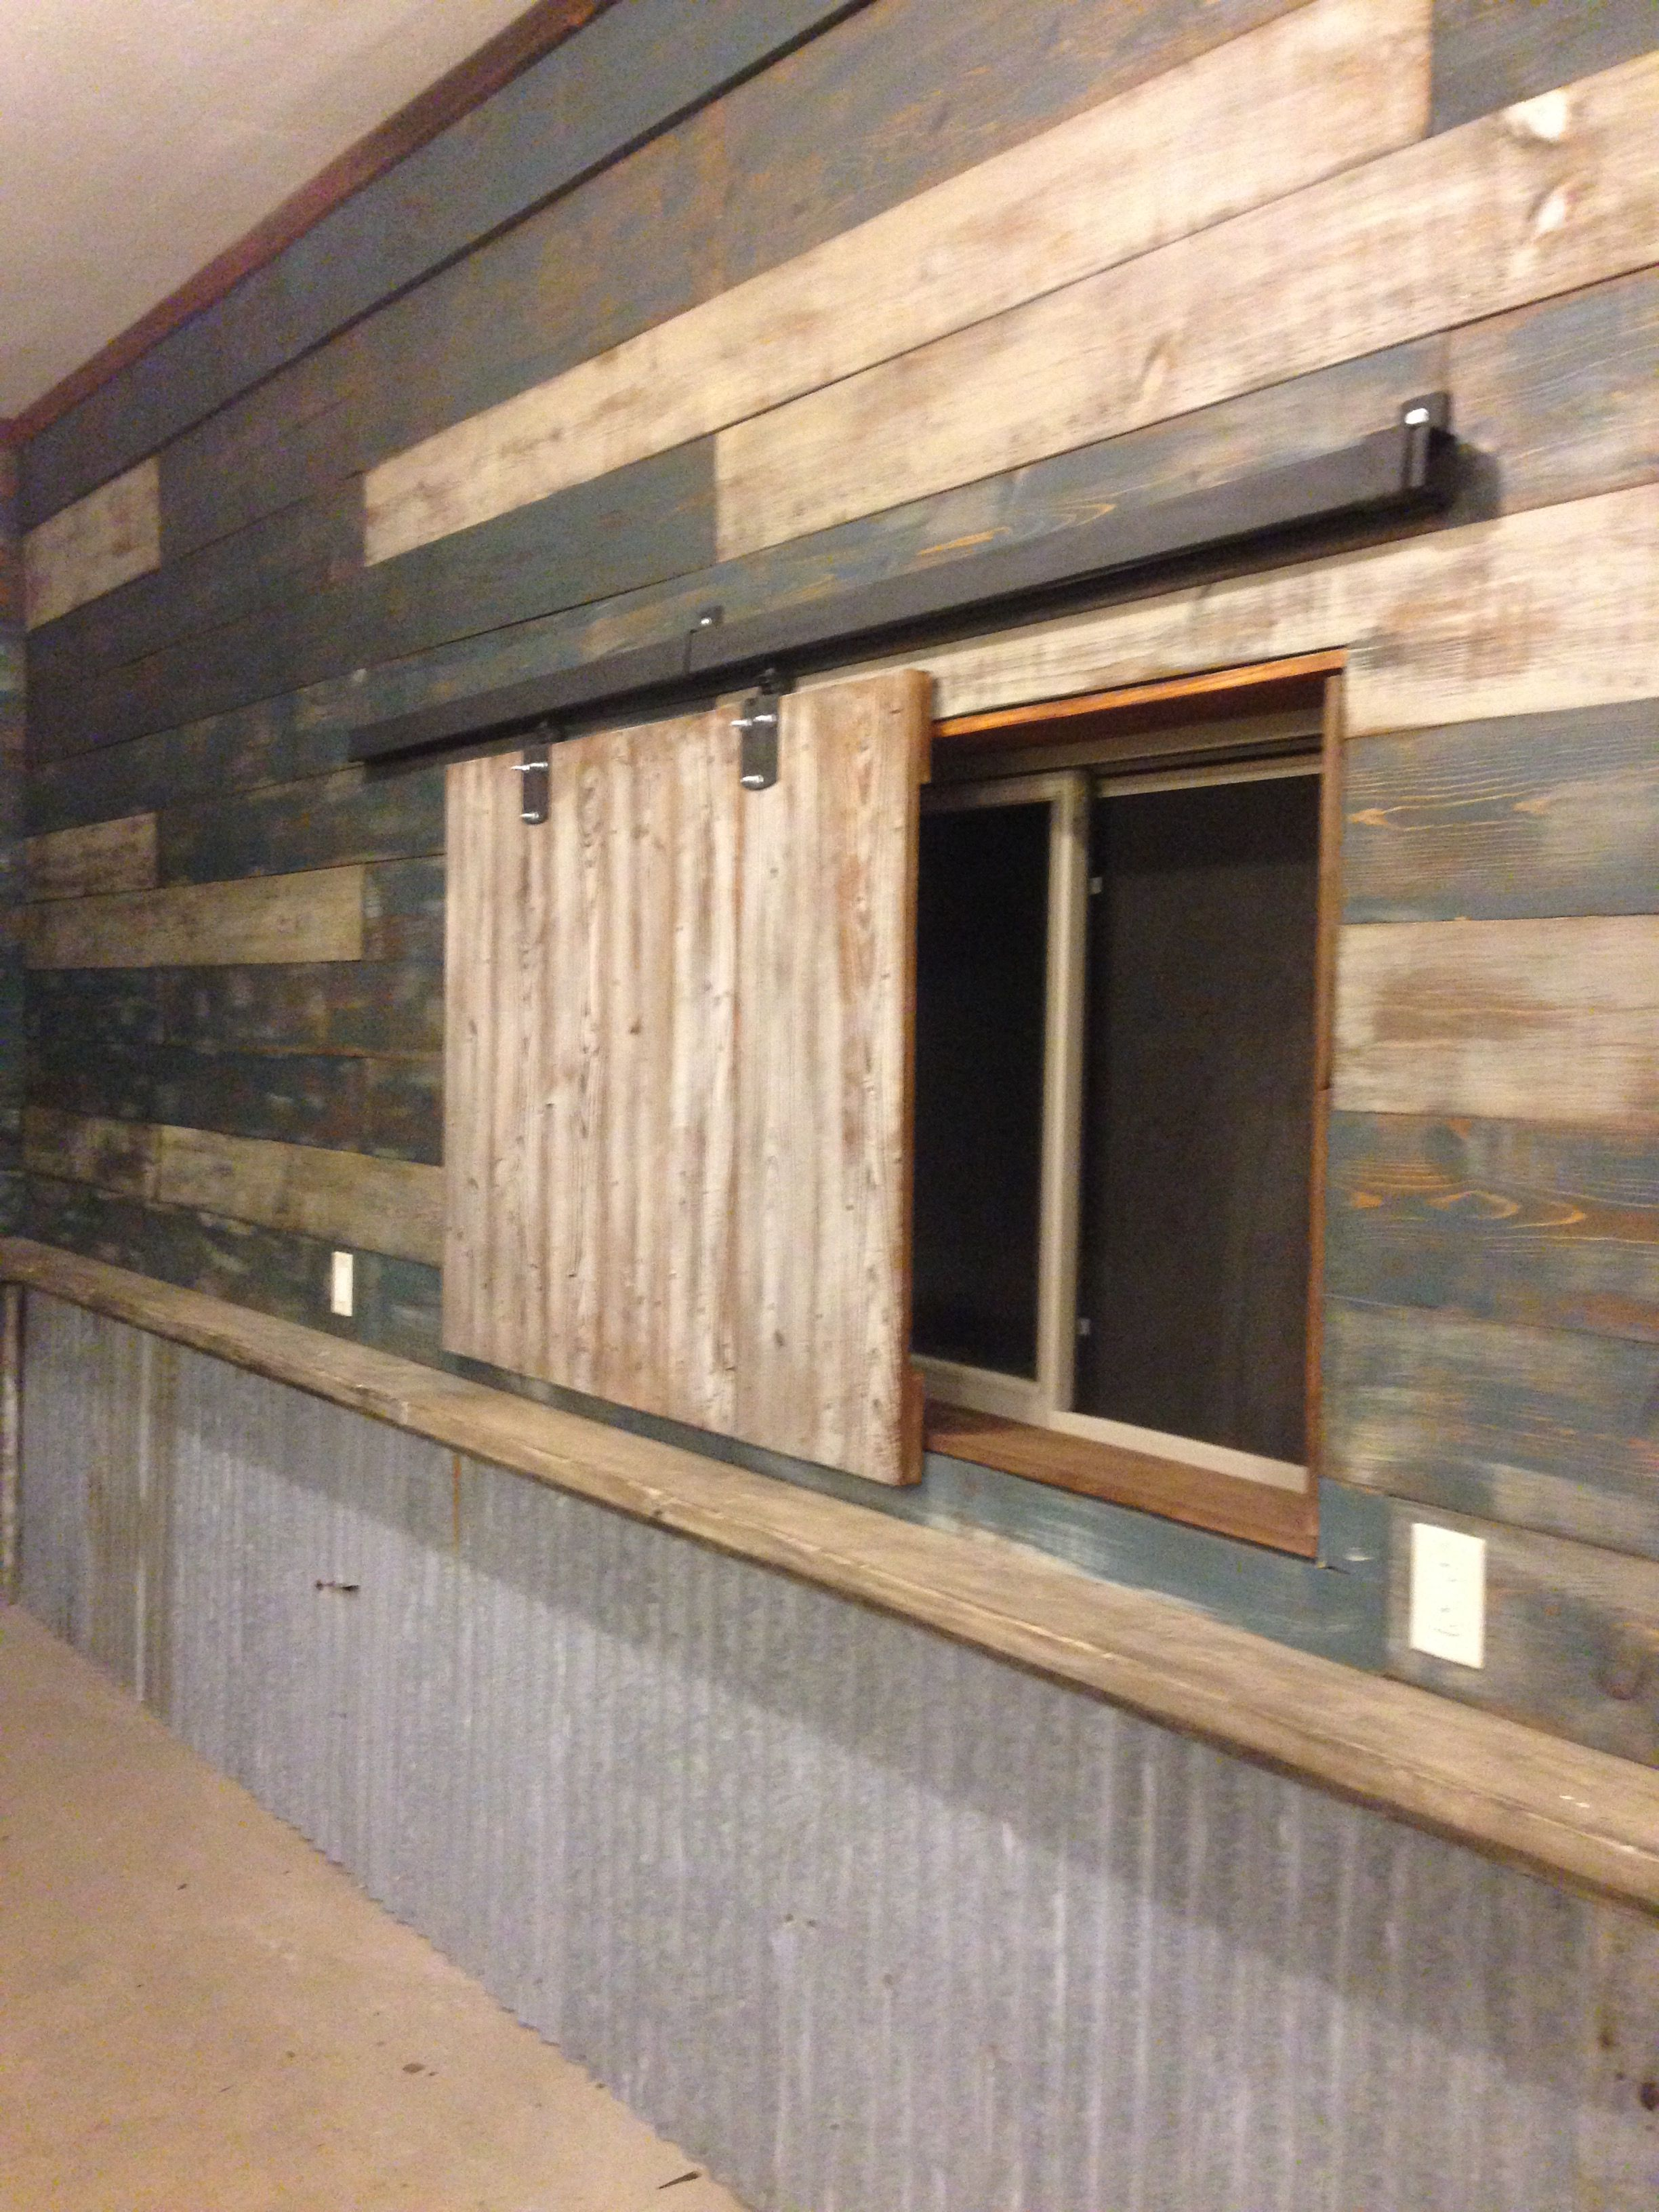 My garage man cave used reclaimed barn wood and door hardware to